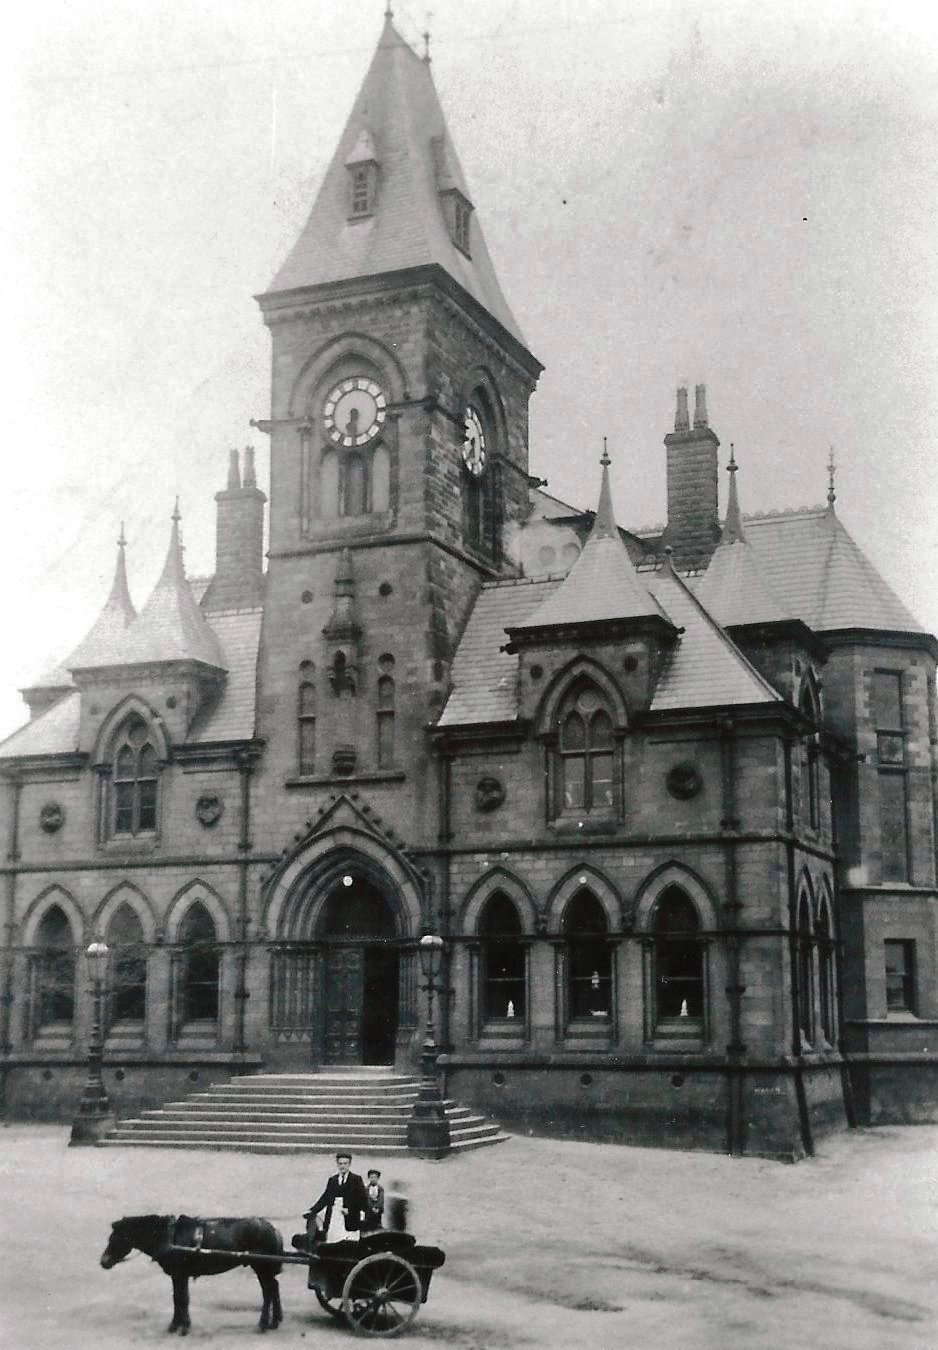 Yeadon Town Hall 1905. Aireborough Historical Society.